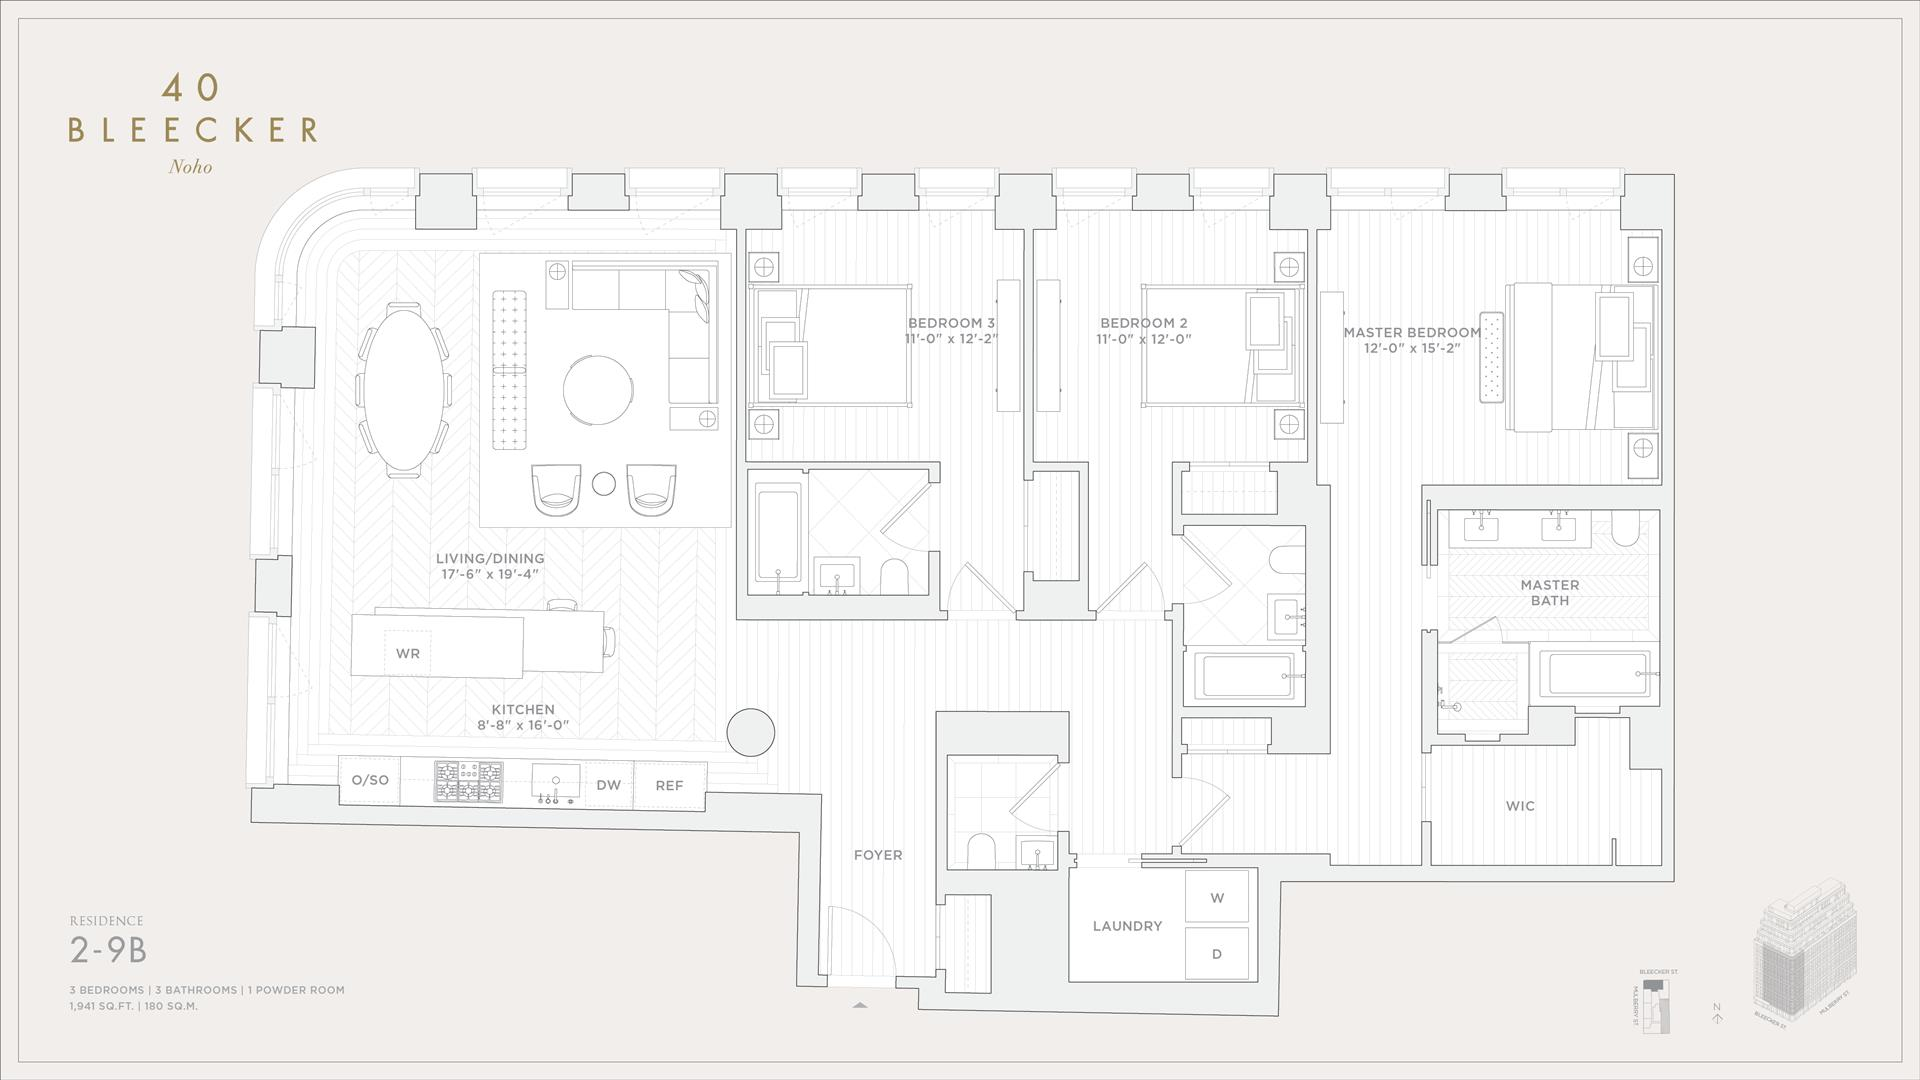 Floor plan of 40 Bleecker Street, 8B - NoHo, New York